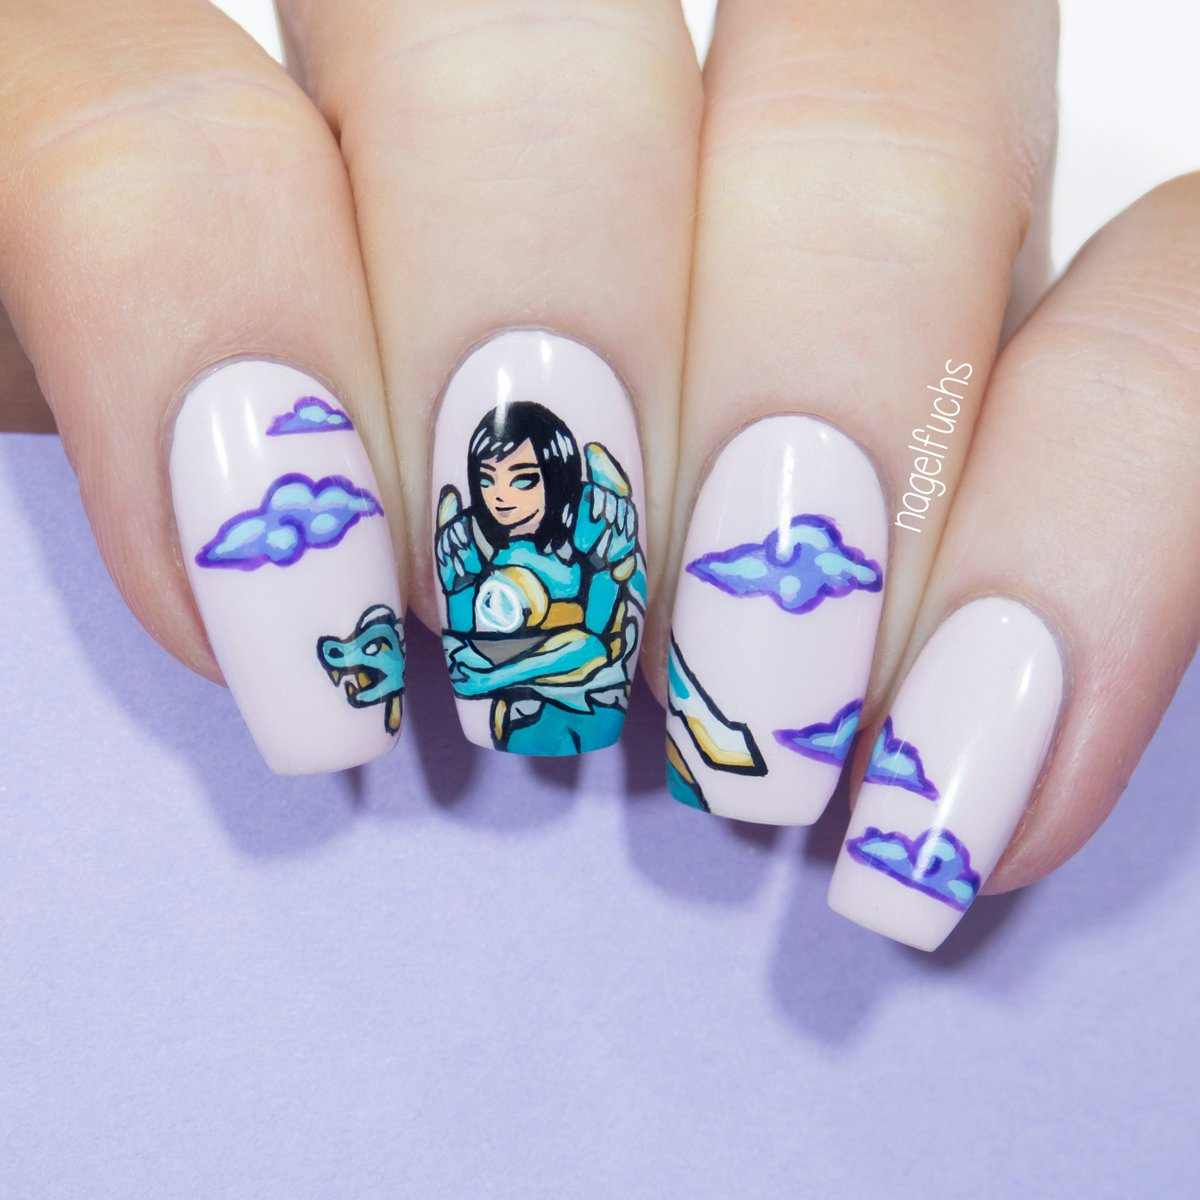 Nailart hashtag on twitter nailart hashtag on twitter prinsesfo Choice Image